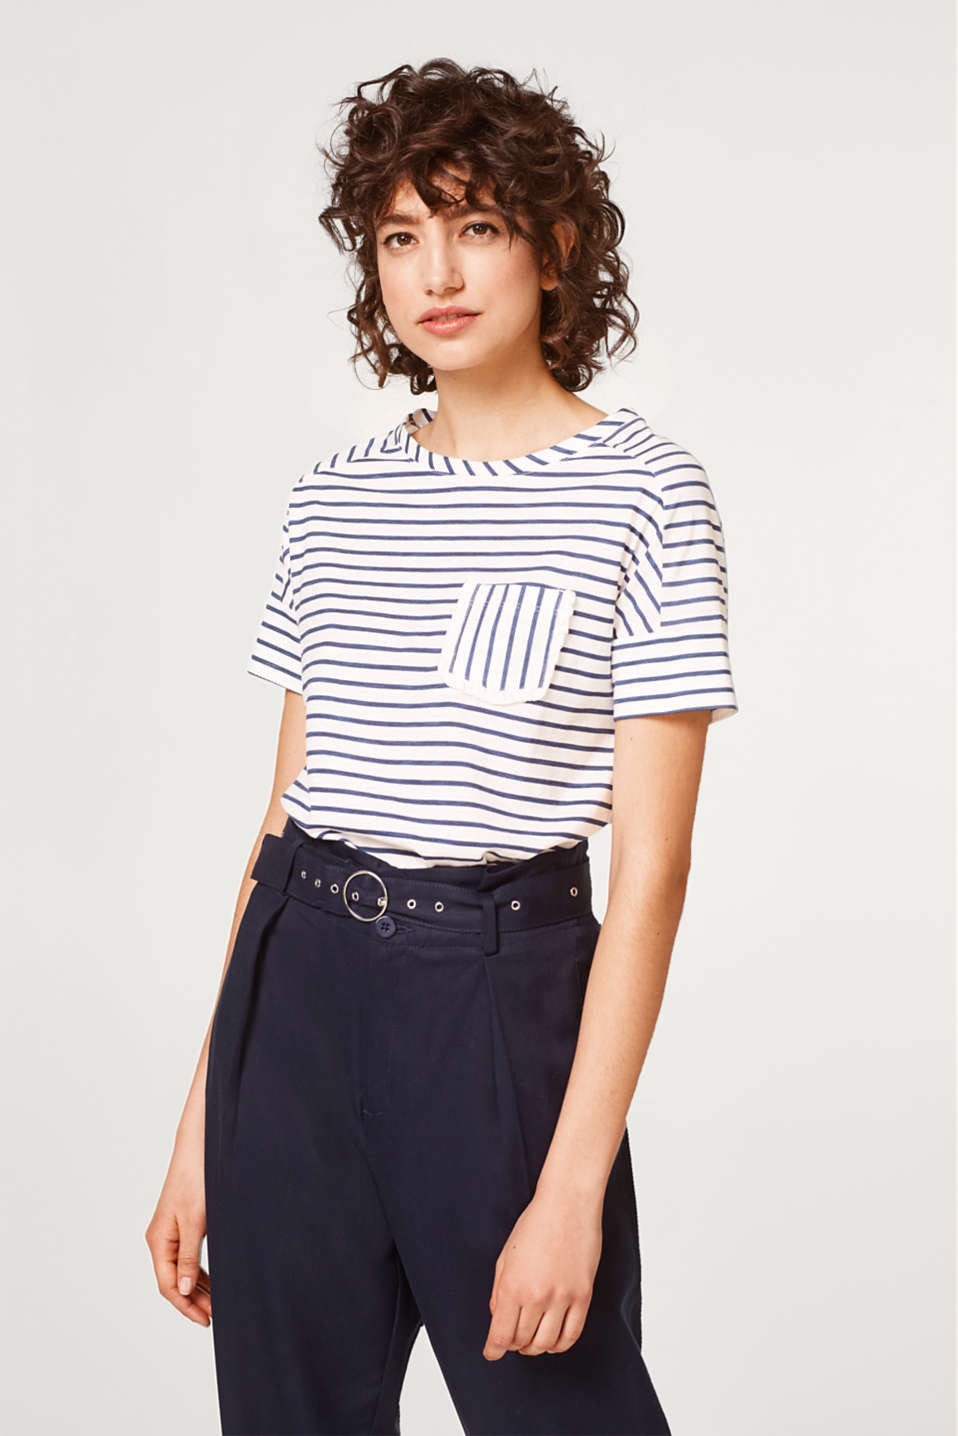 Esprit - Boxy T-shirt with stripes and frills, 100% cotton